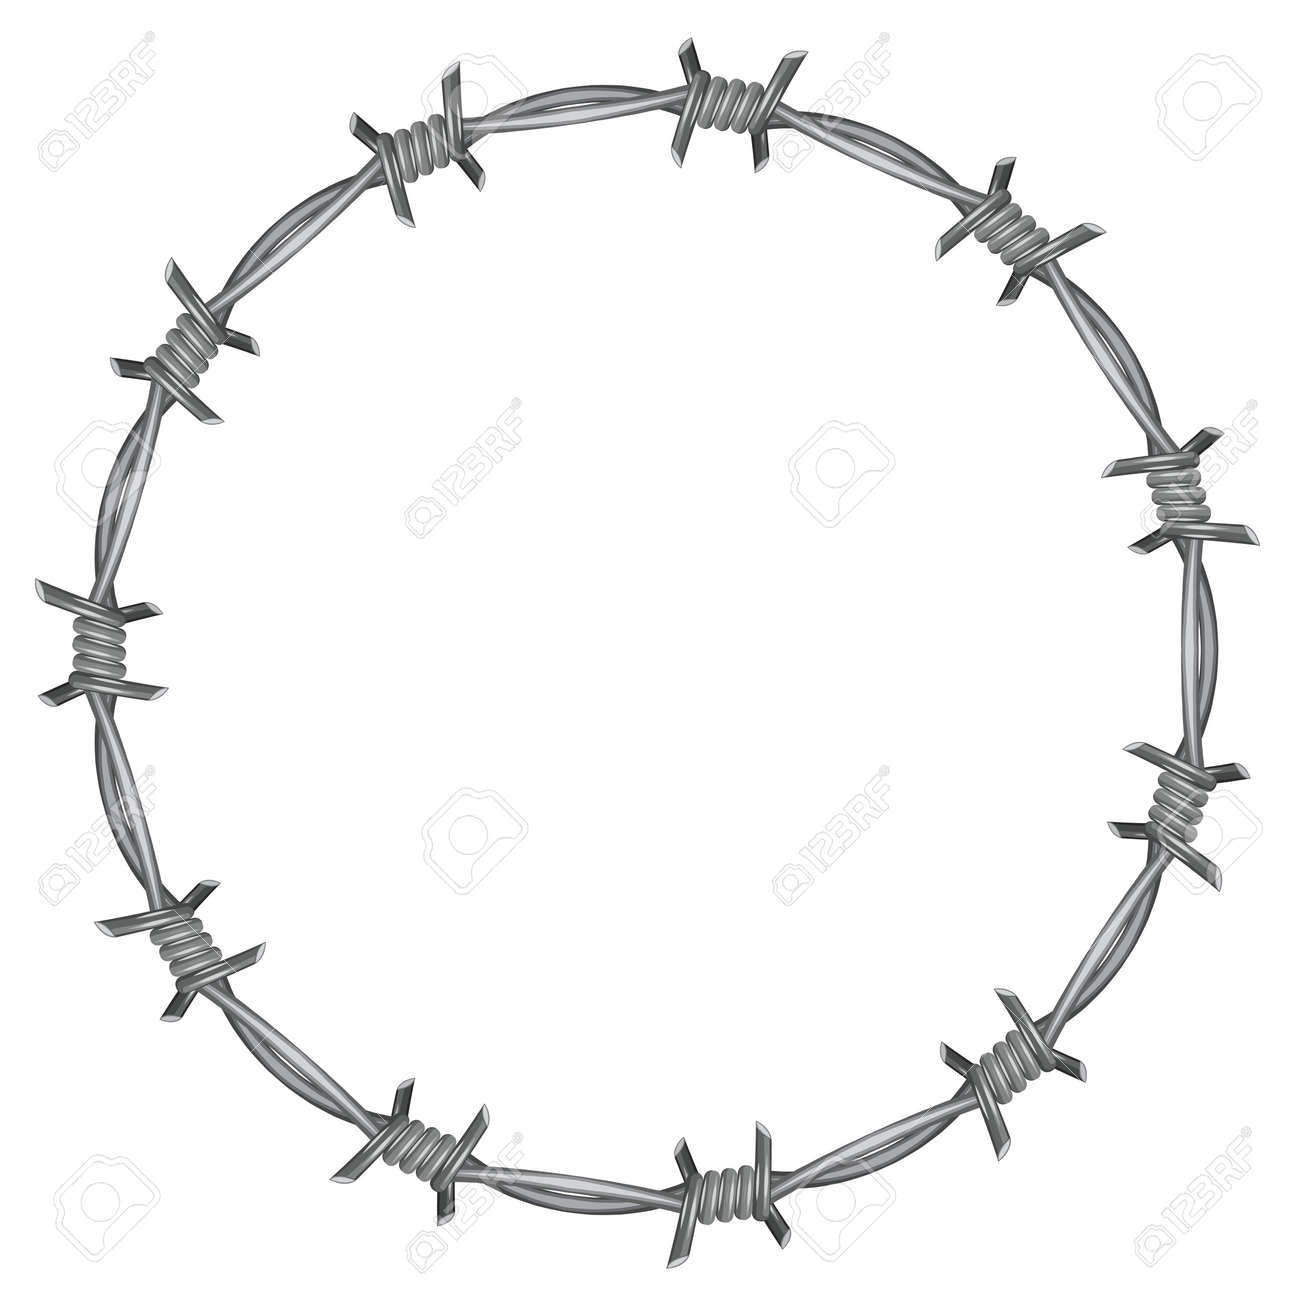 frame barbed wire royalty free cliparts vectors and stock rh 123rf com barbed wire vector art barbed wire vector